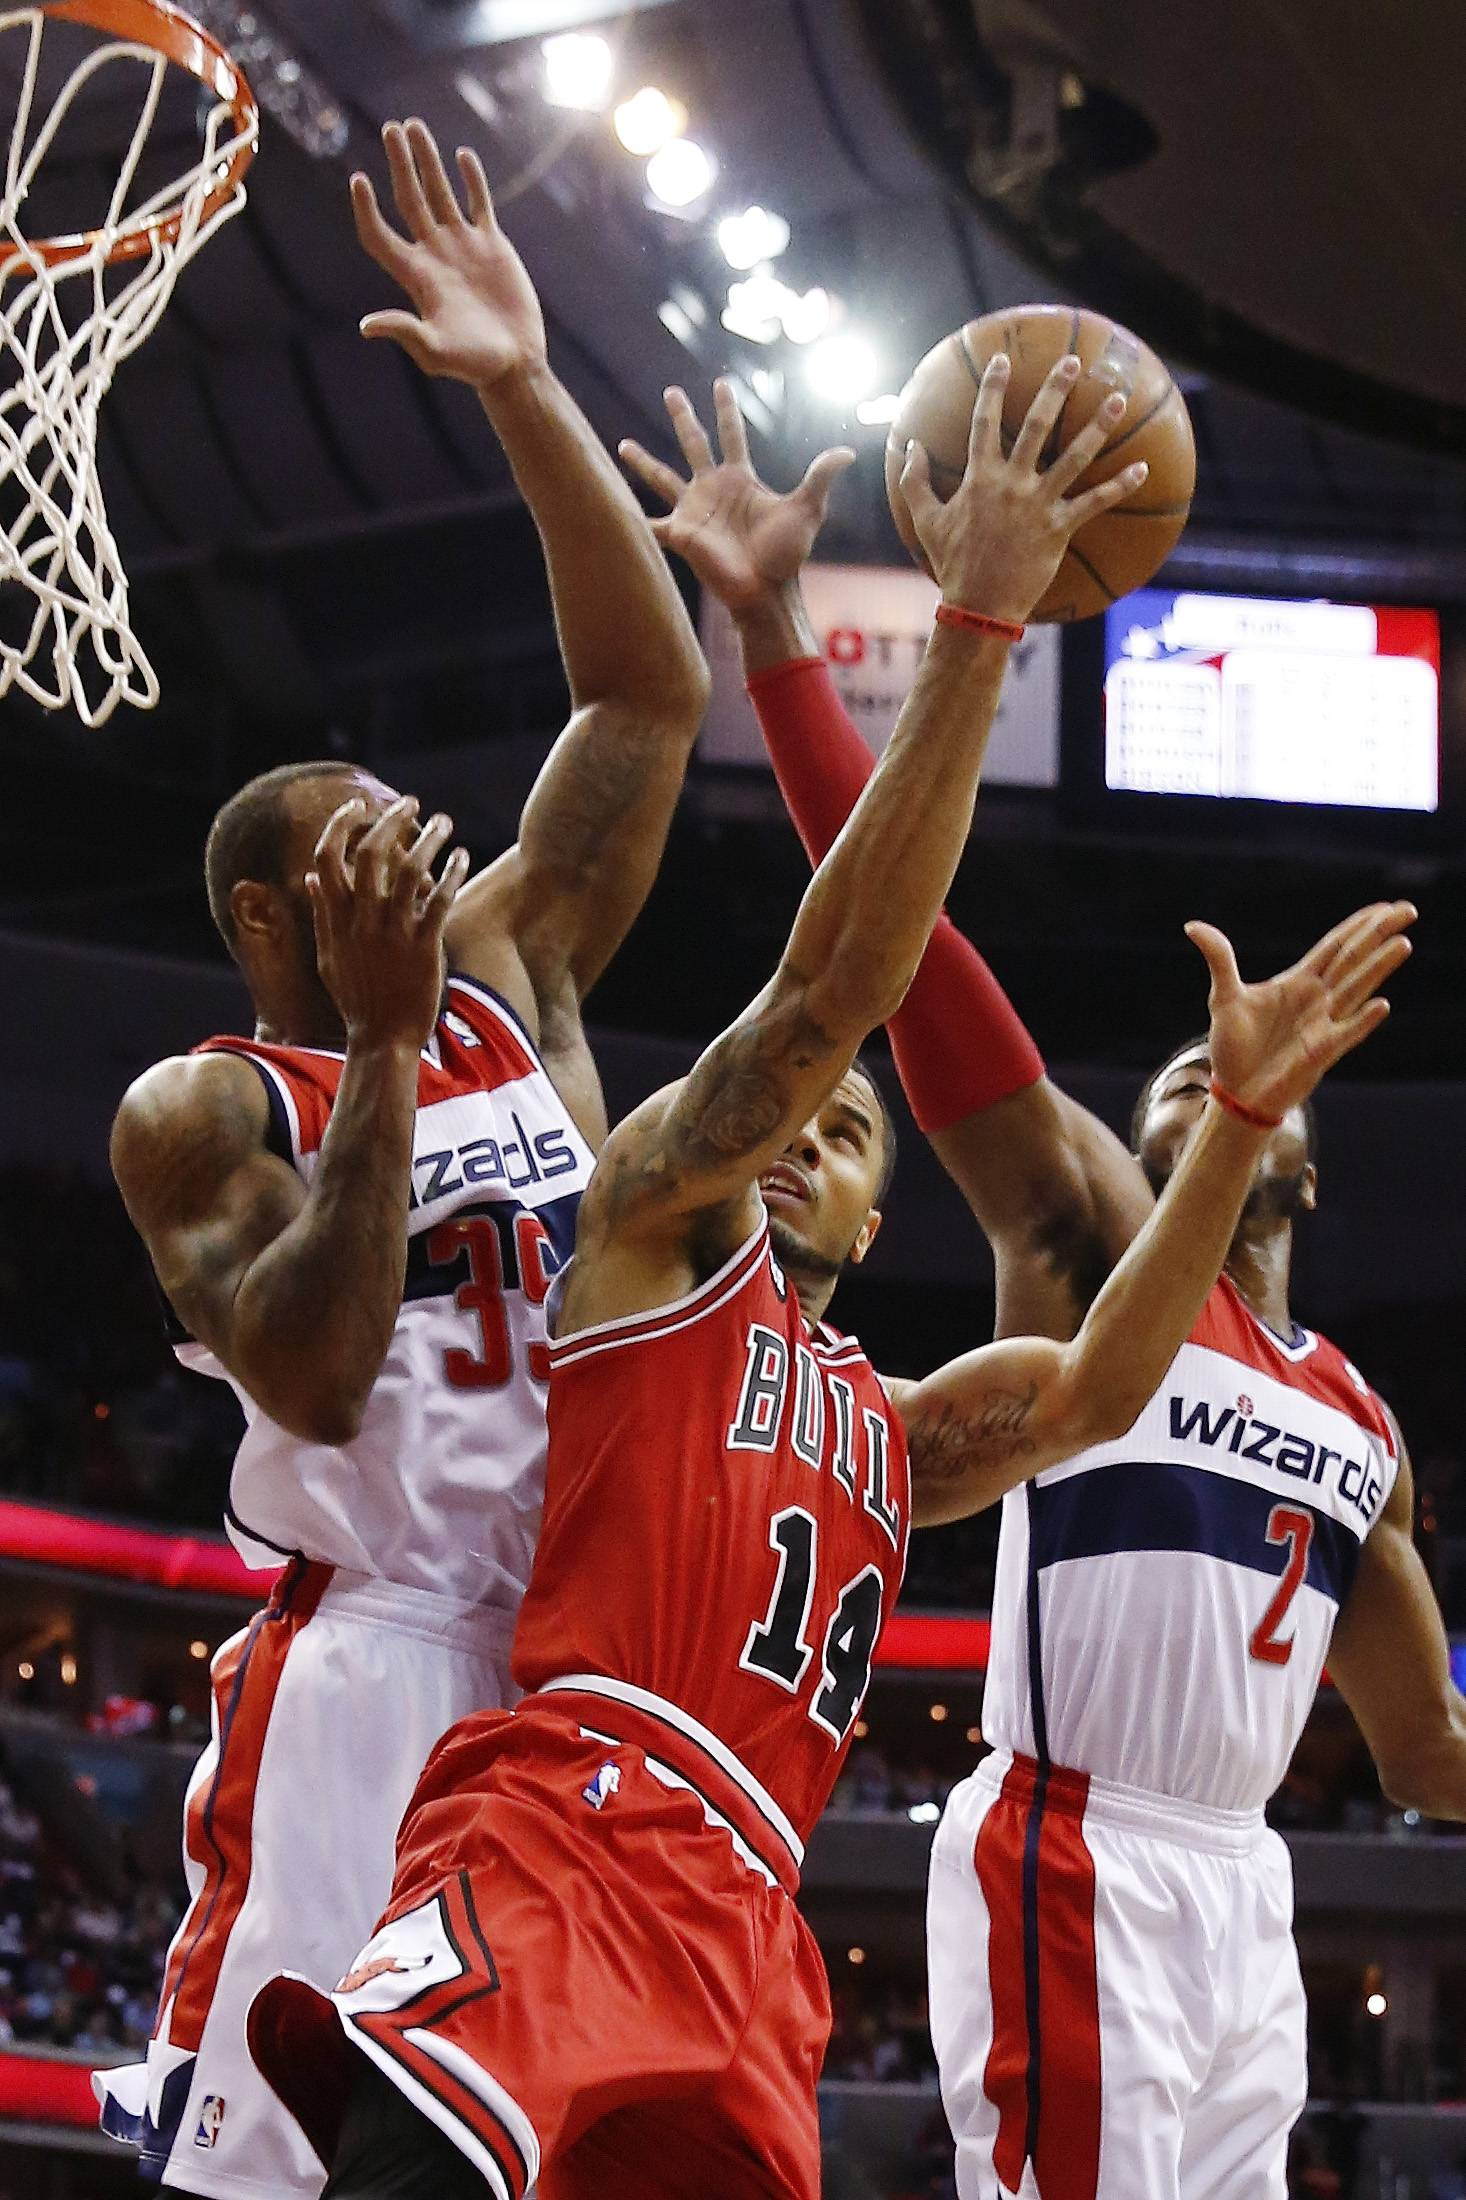 Chicago Bulls guard D.J. Augustin (14) shoots between Washington Wizards forward Trevor Booker (35) and guard John Wall (2) during the first half.